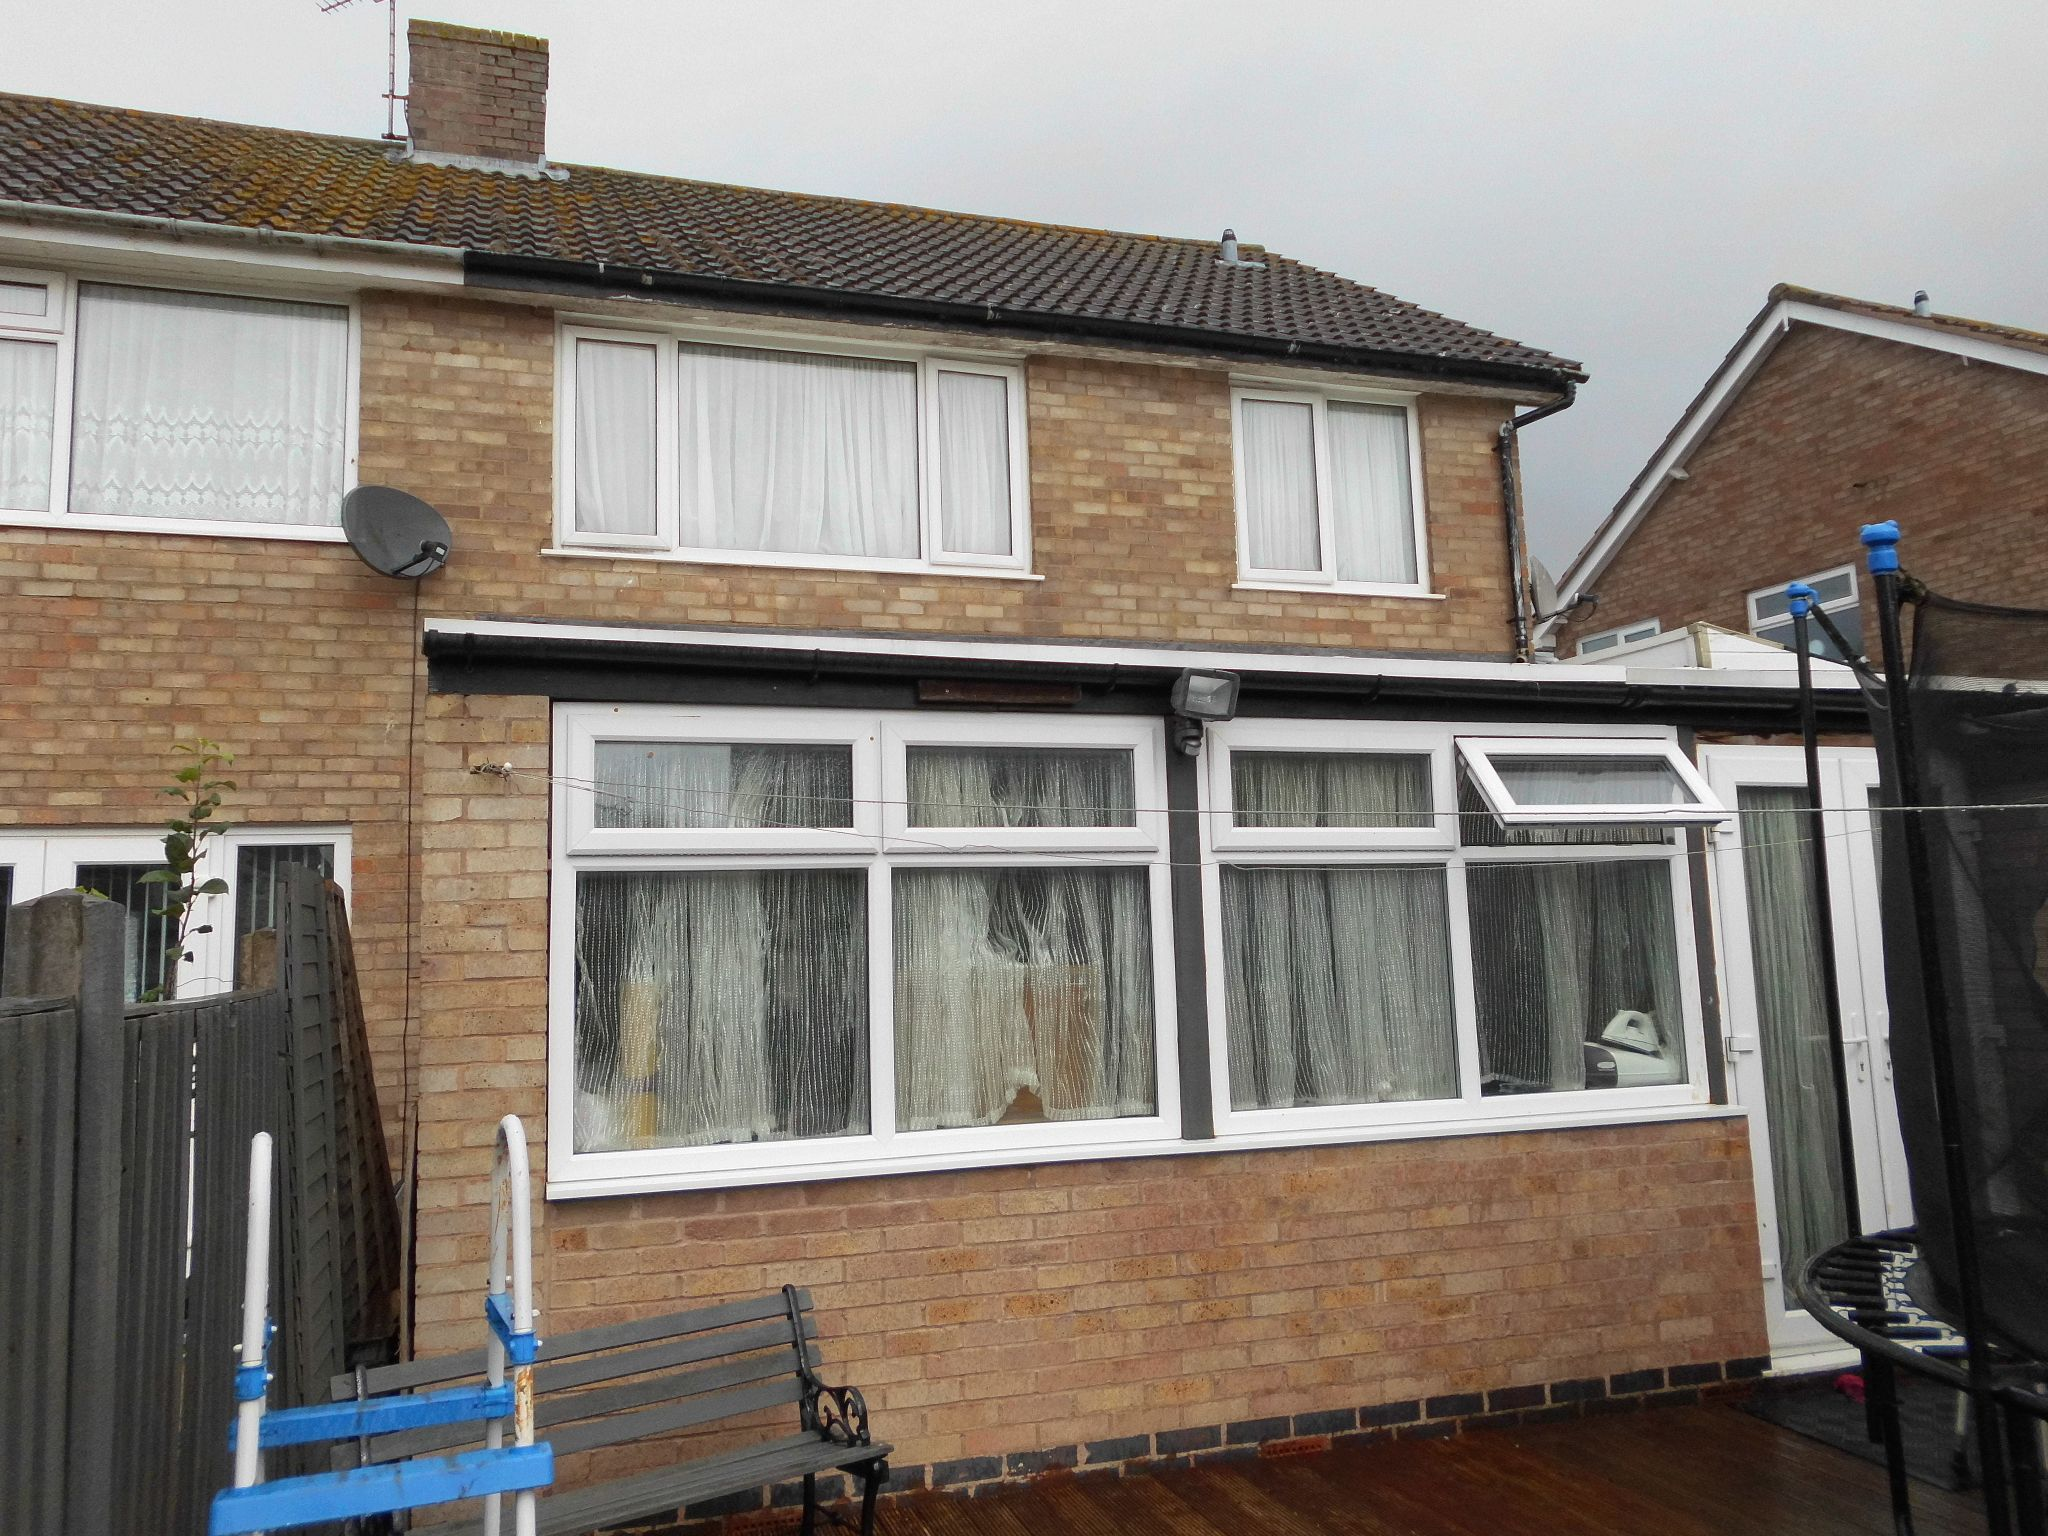 3 bedroom semi-detached house For Sale in Oadby And Wigston - Photograph 14.